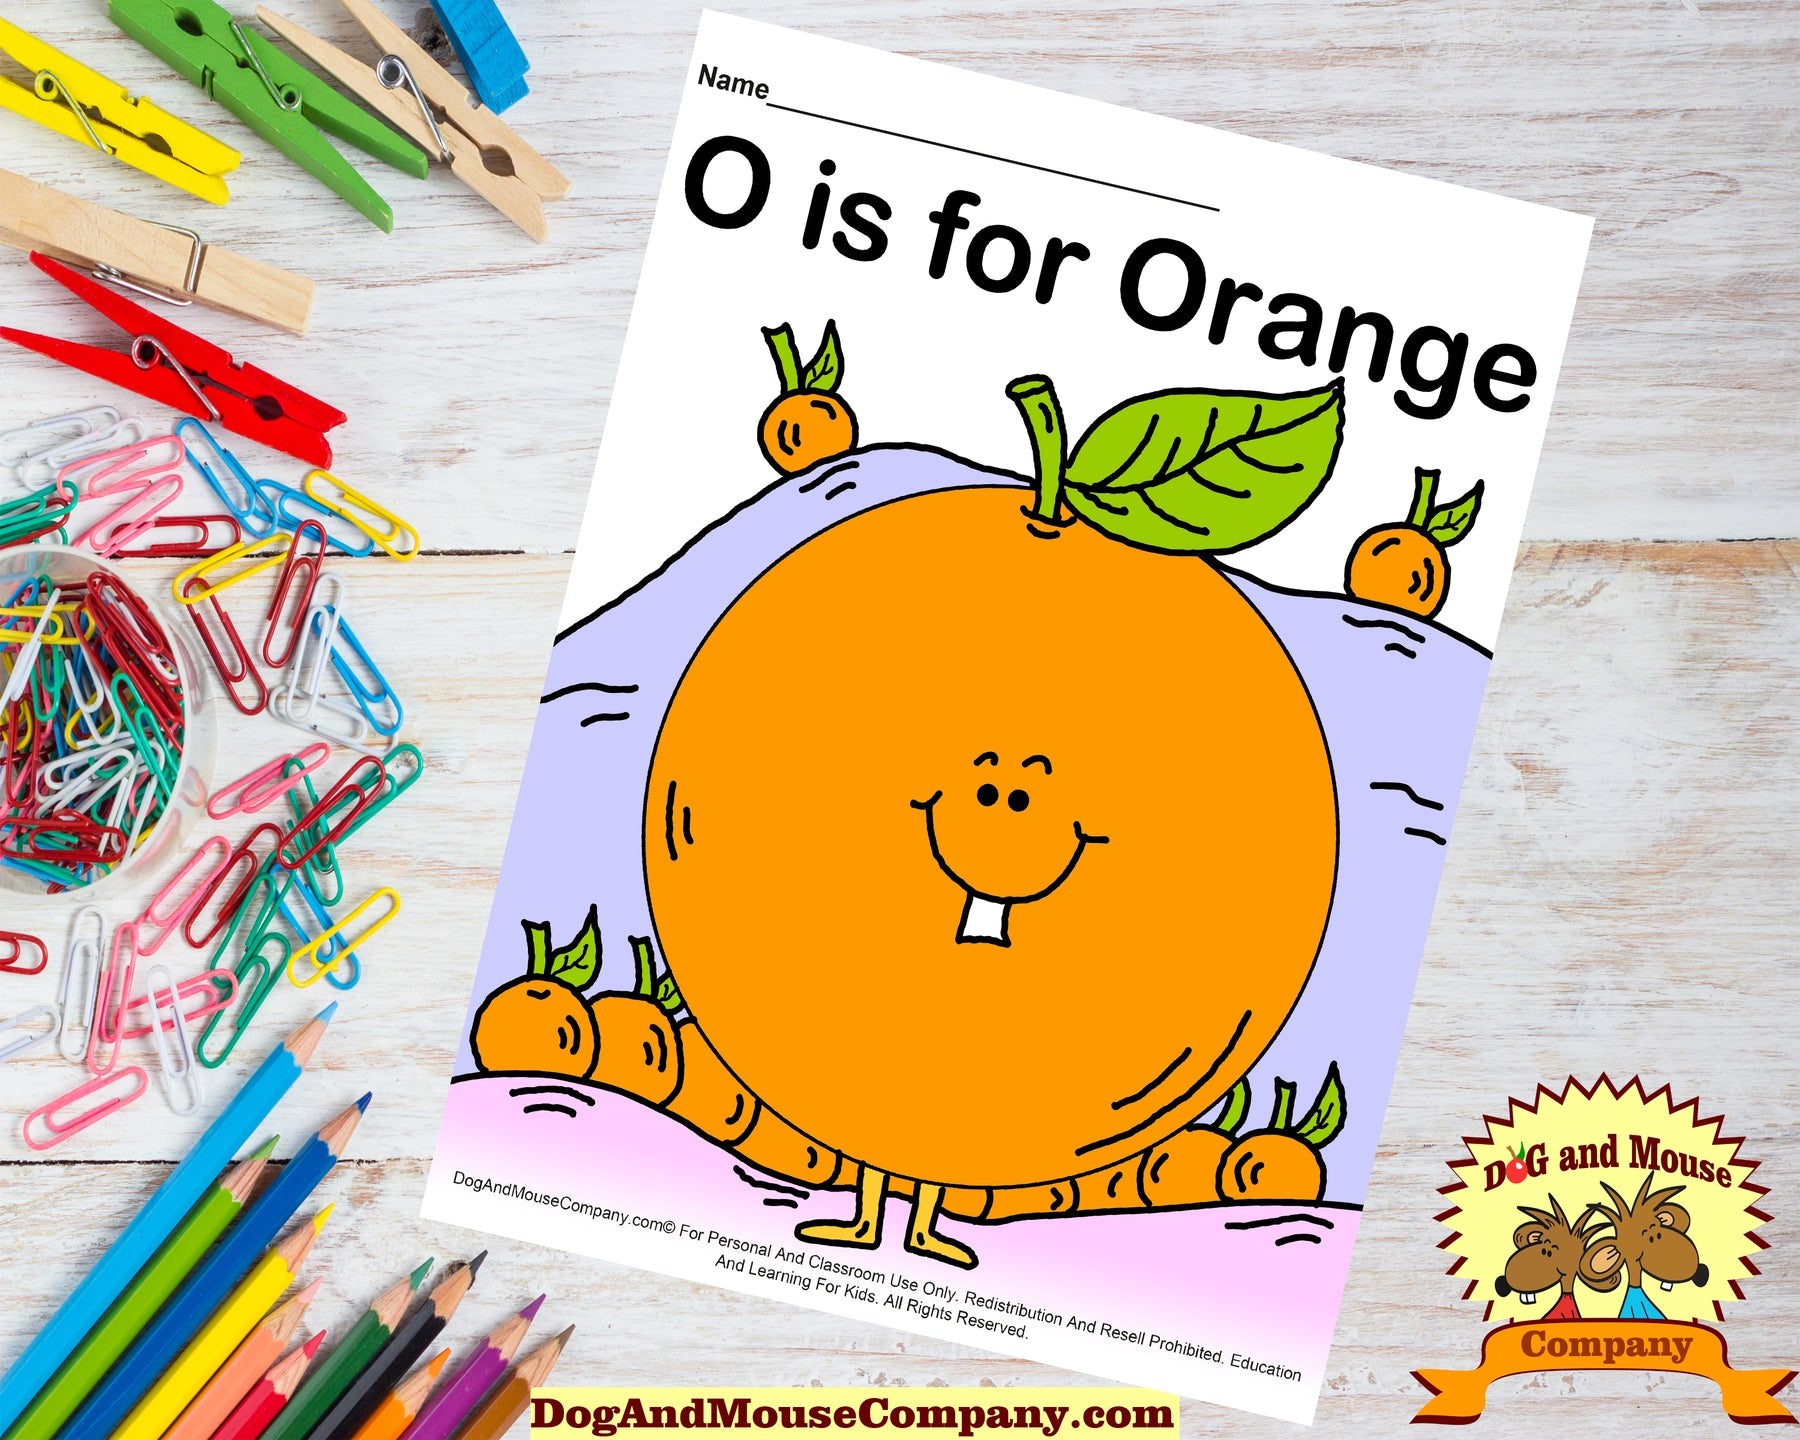 O Is For Orange Colored Template Printable Worksheet for Preschool Kids by dogandmousecompany.com